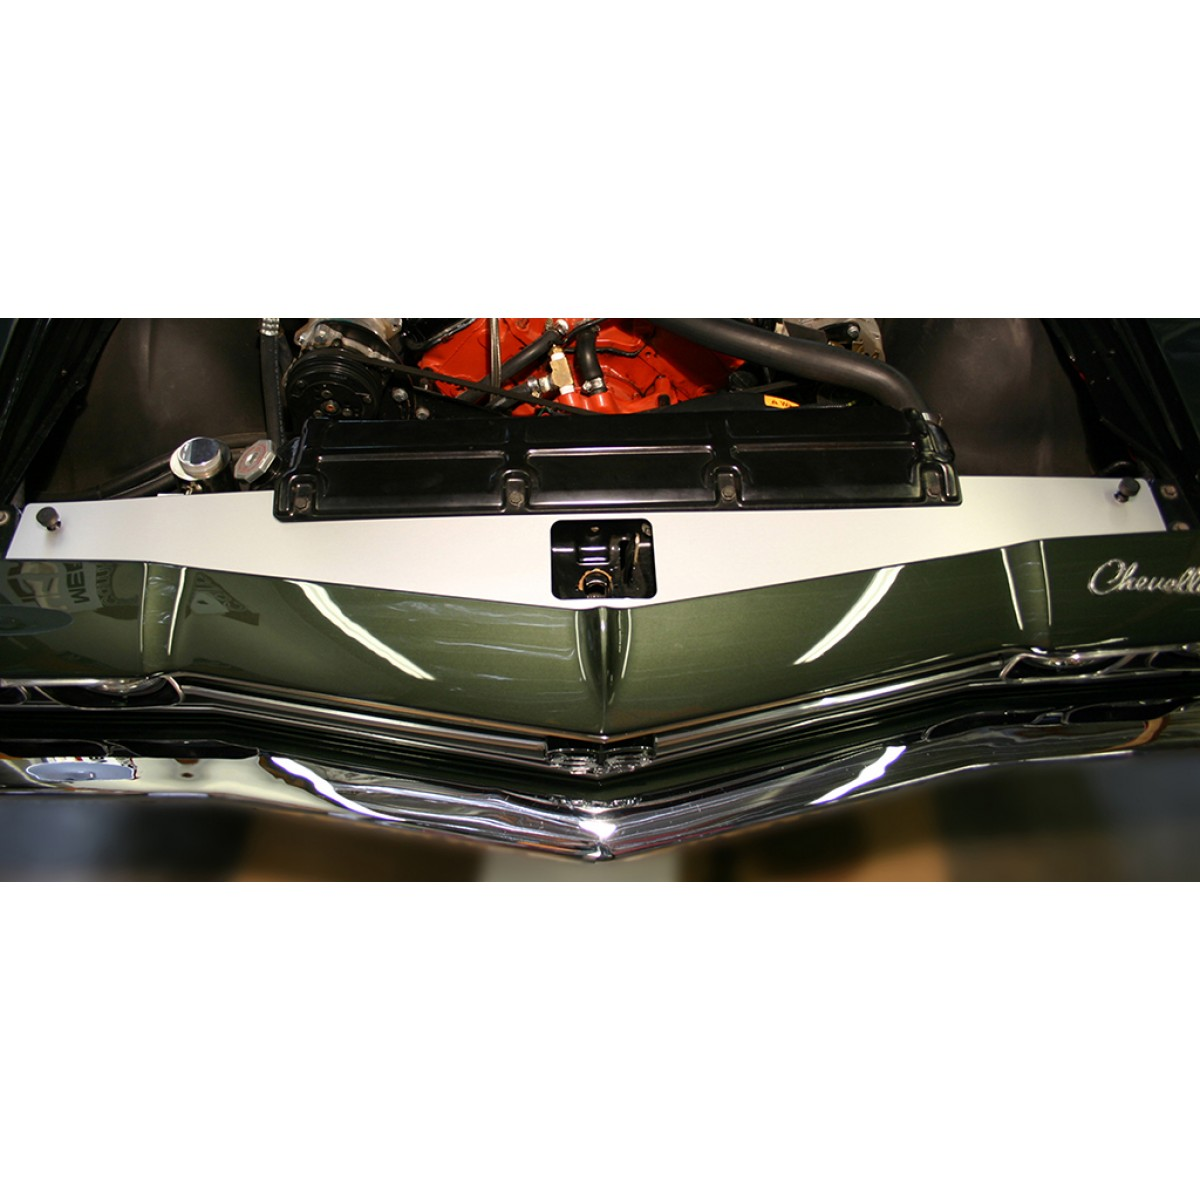 68 69 Chevelle Show Panel With No Engraving Gto Wiring Diagram 1968 1969 Radiator Support